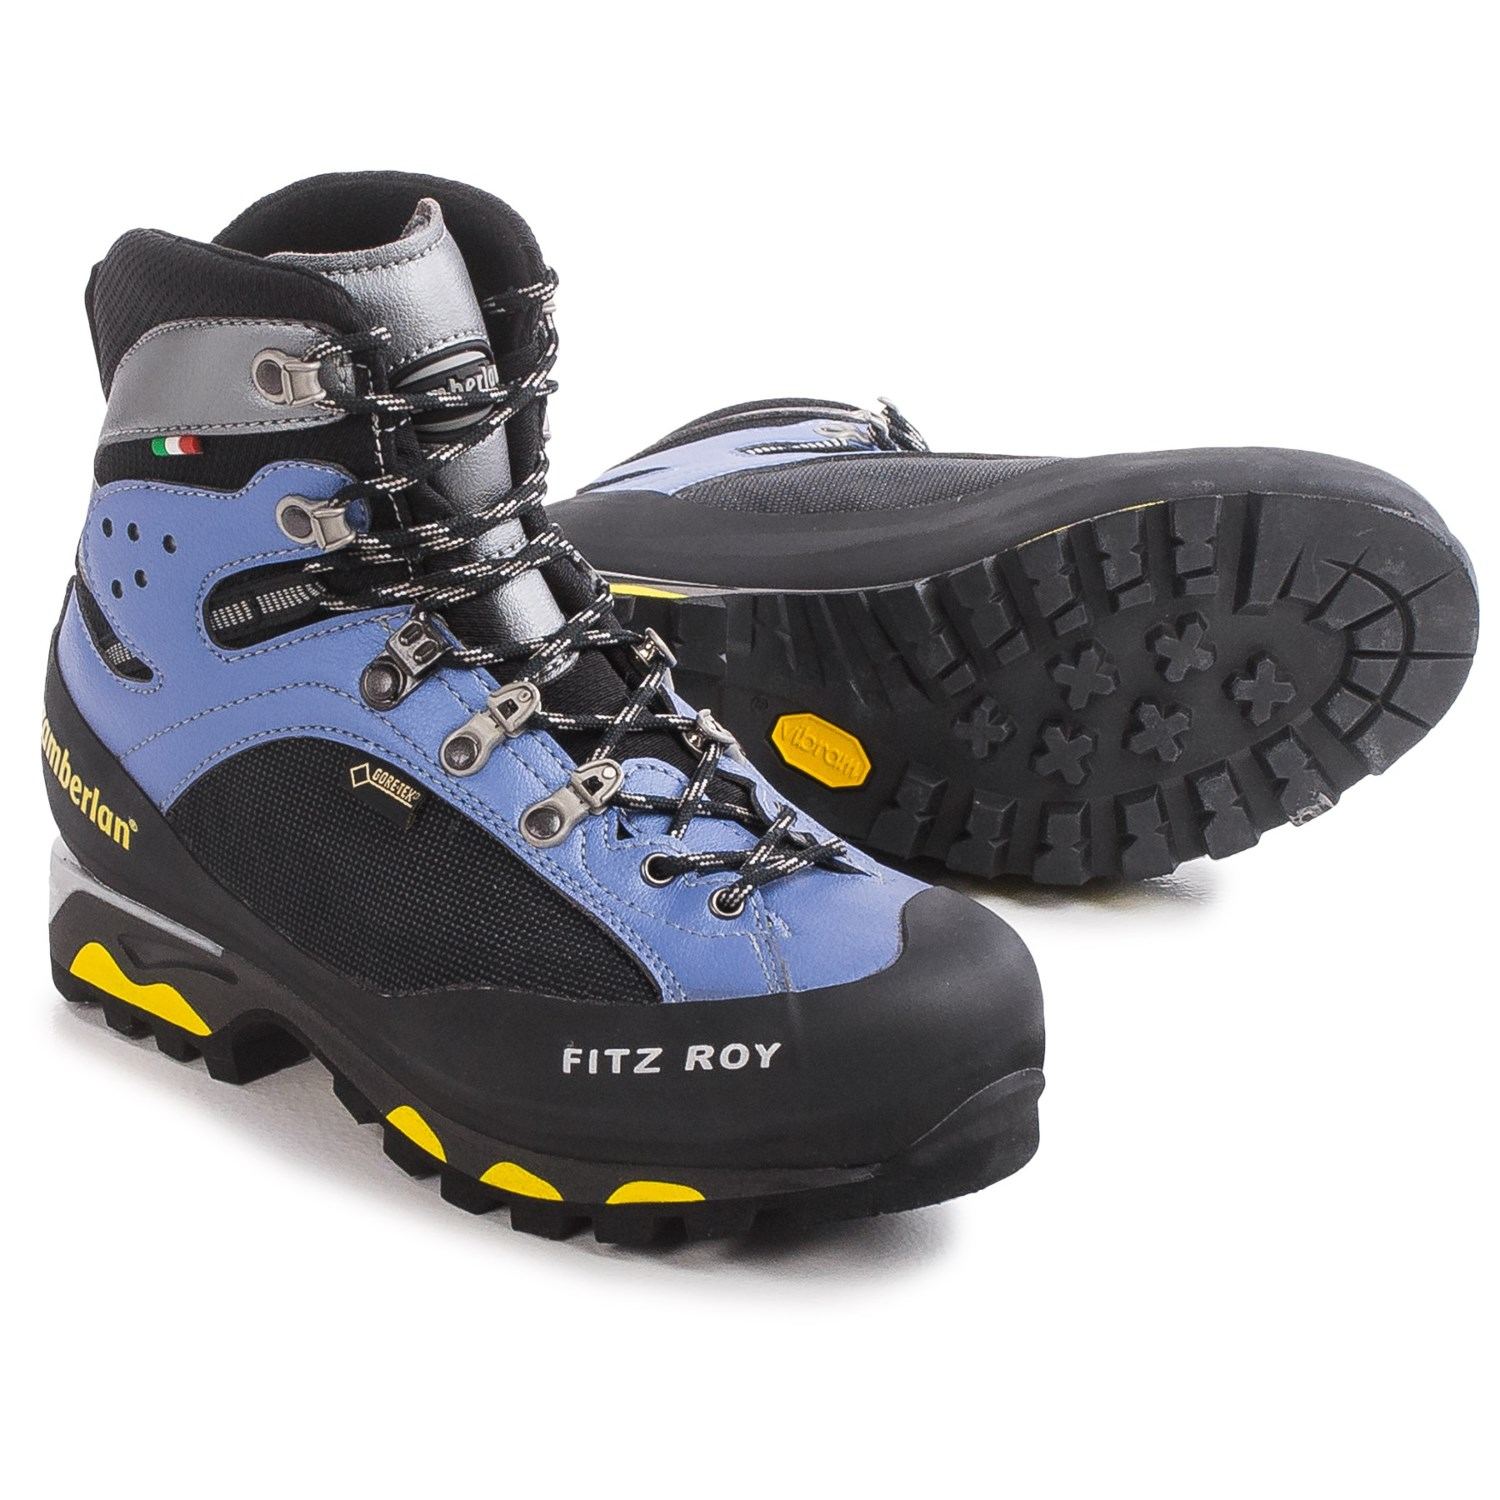 Zamberlan Fitz Roy Gore Tex 174 Rr Mountaineering Boots For